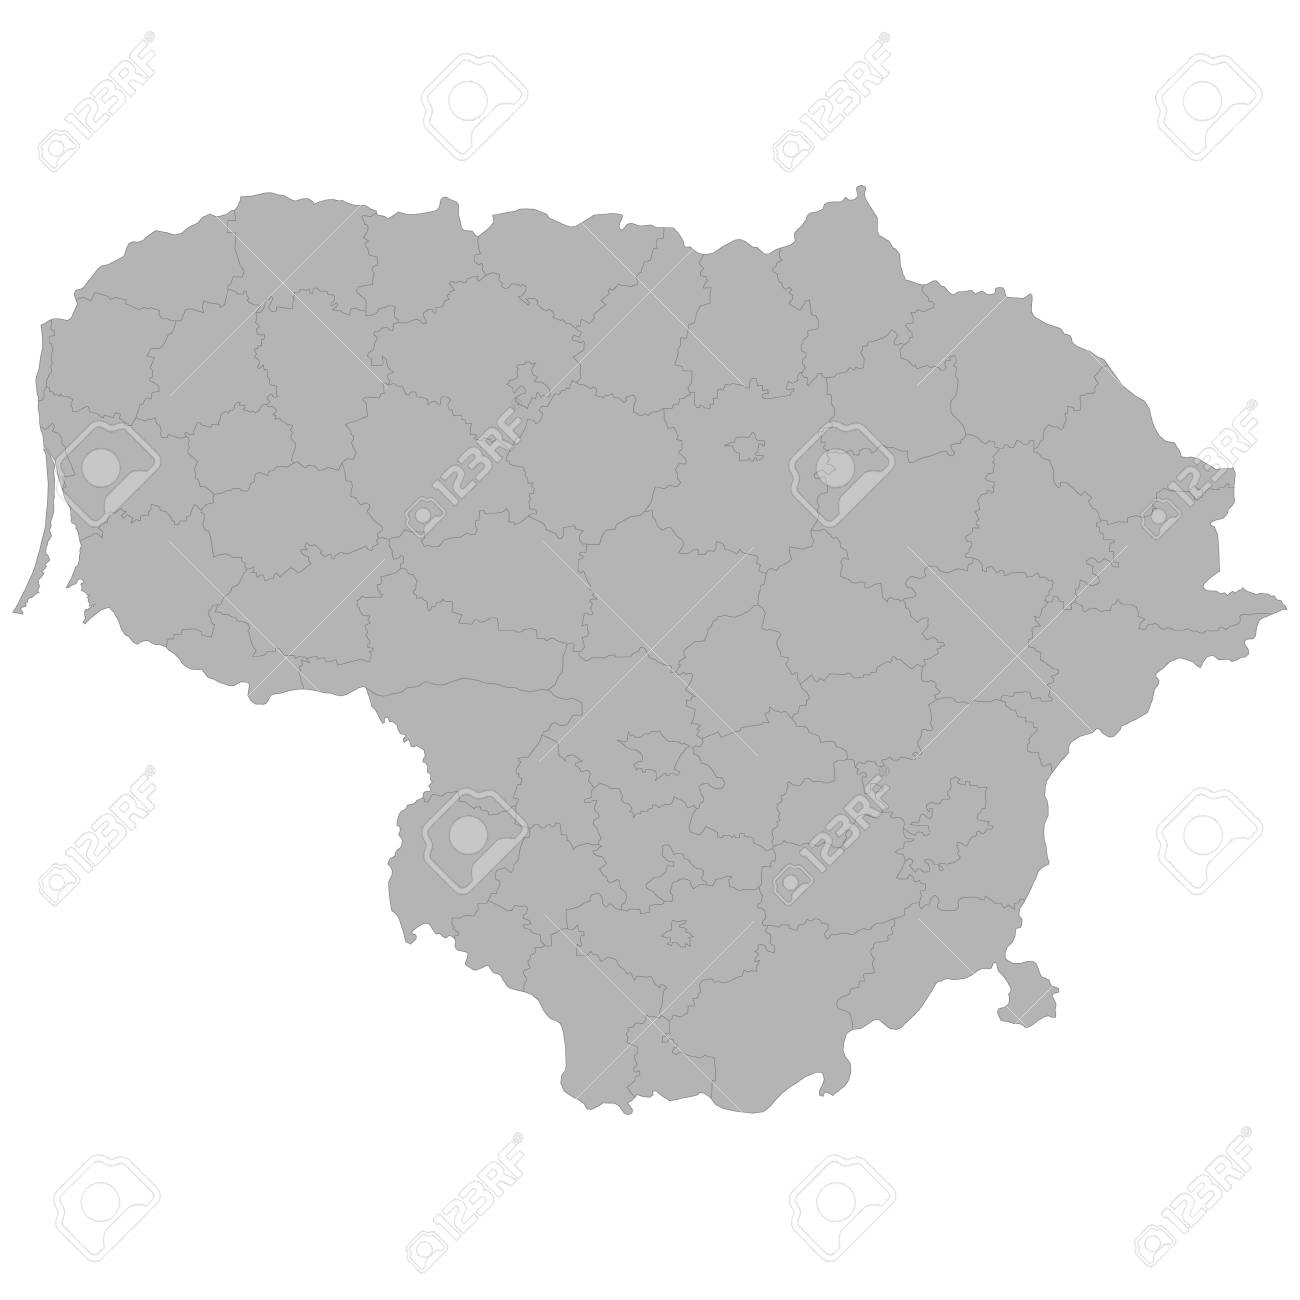 High quality map of Lithuania with borders of the regions on white background - 108376042